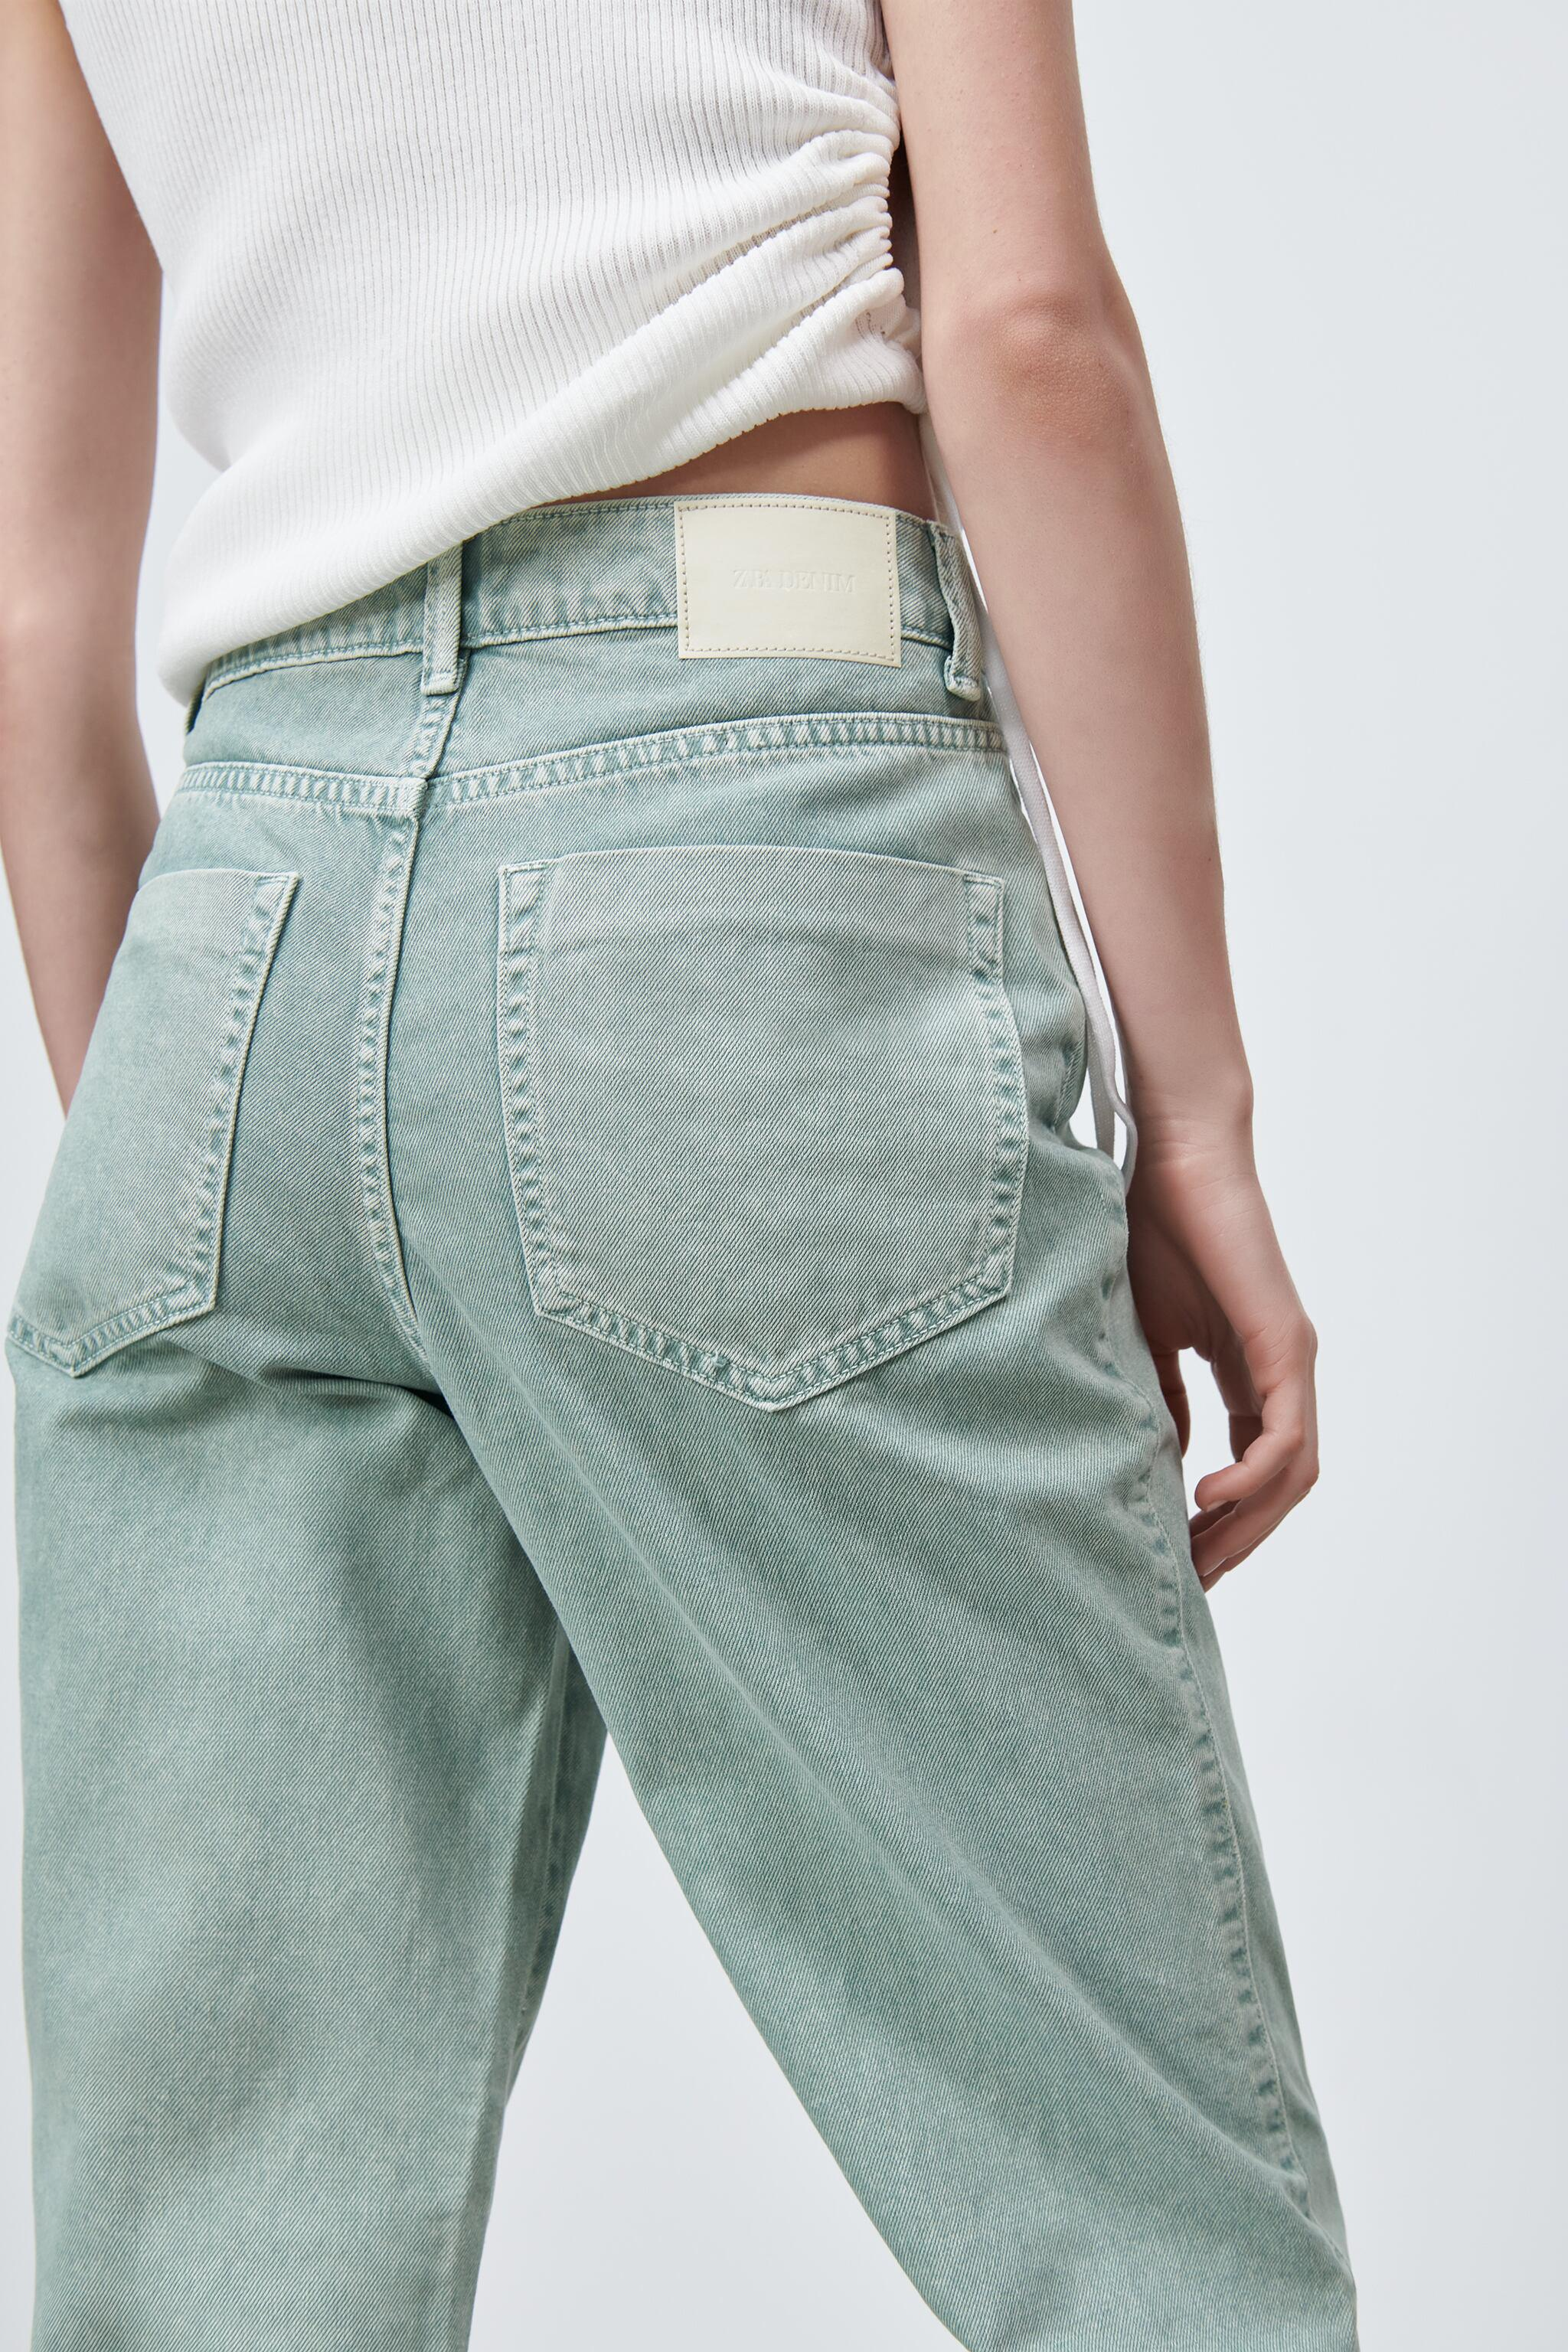 Z1975 HIGH RISE STRAIGHT JEANS 6